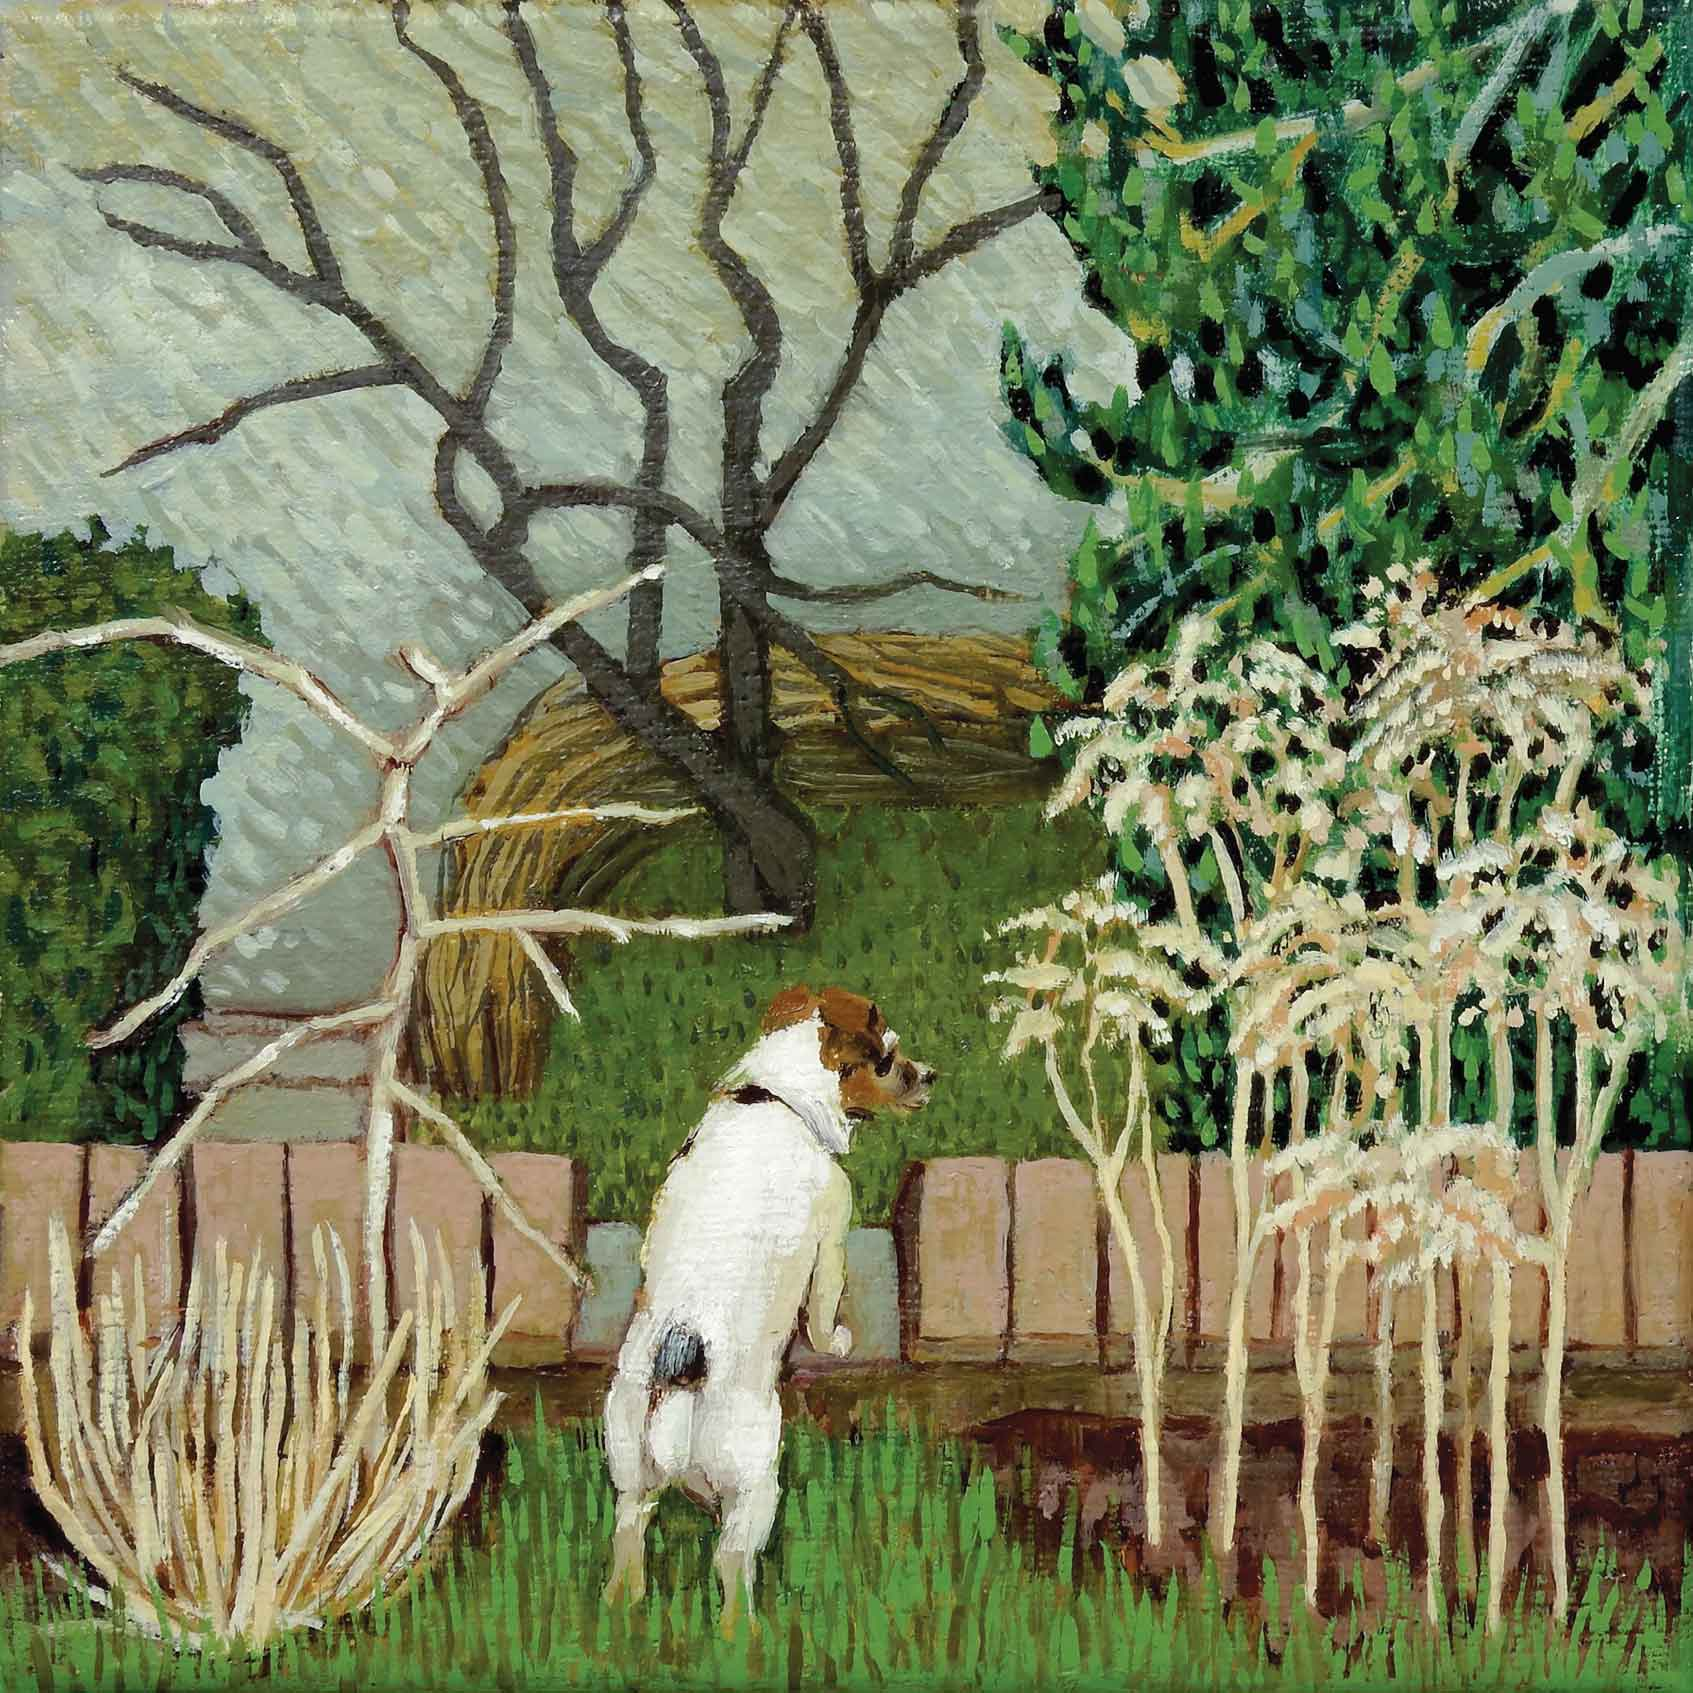 Art greeting card by Ann McCay, A little dog looking out over the garden fence